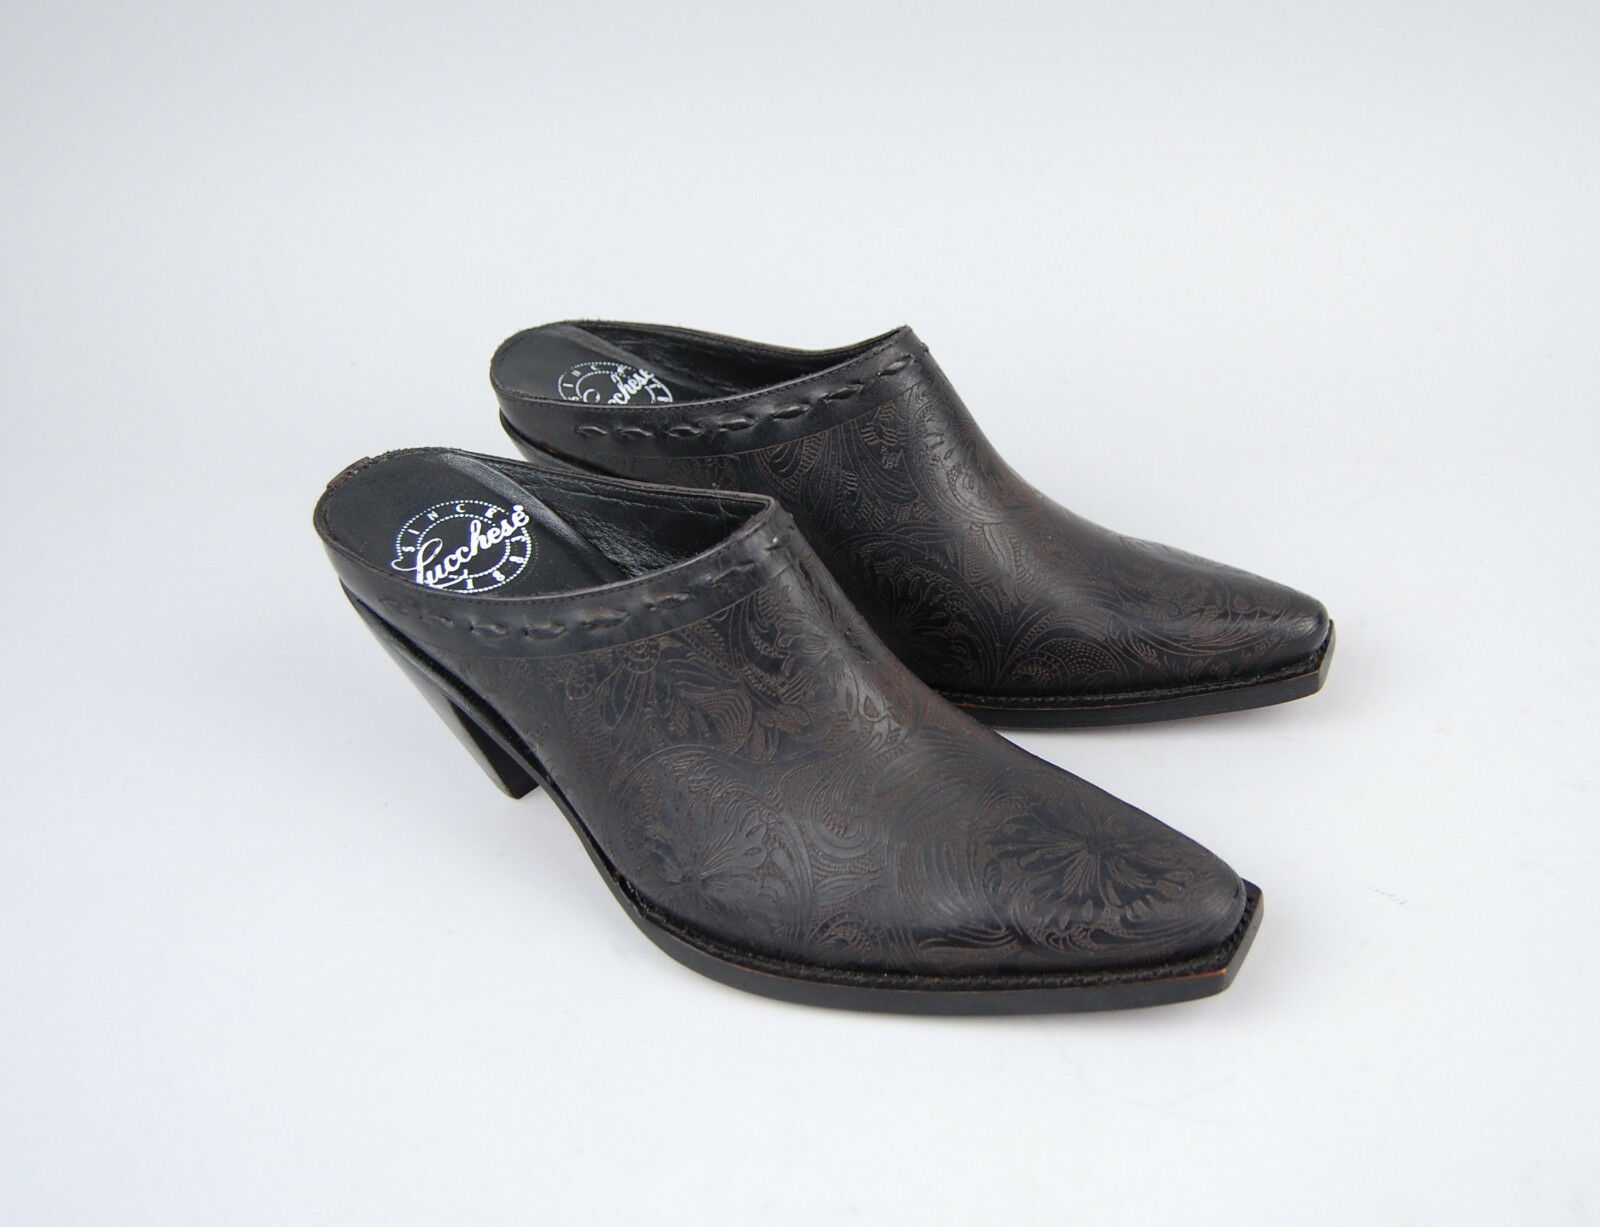 Lucchese Womens Womens Womens Mules Black Slides Western 6.5 B 37 tooled embossed - New 55aa0c